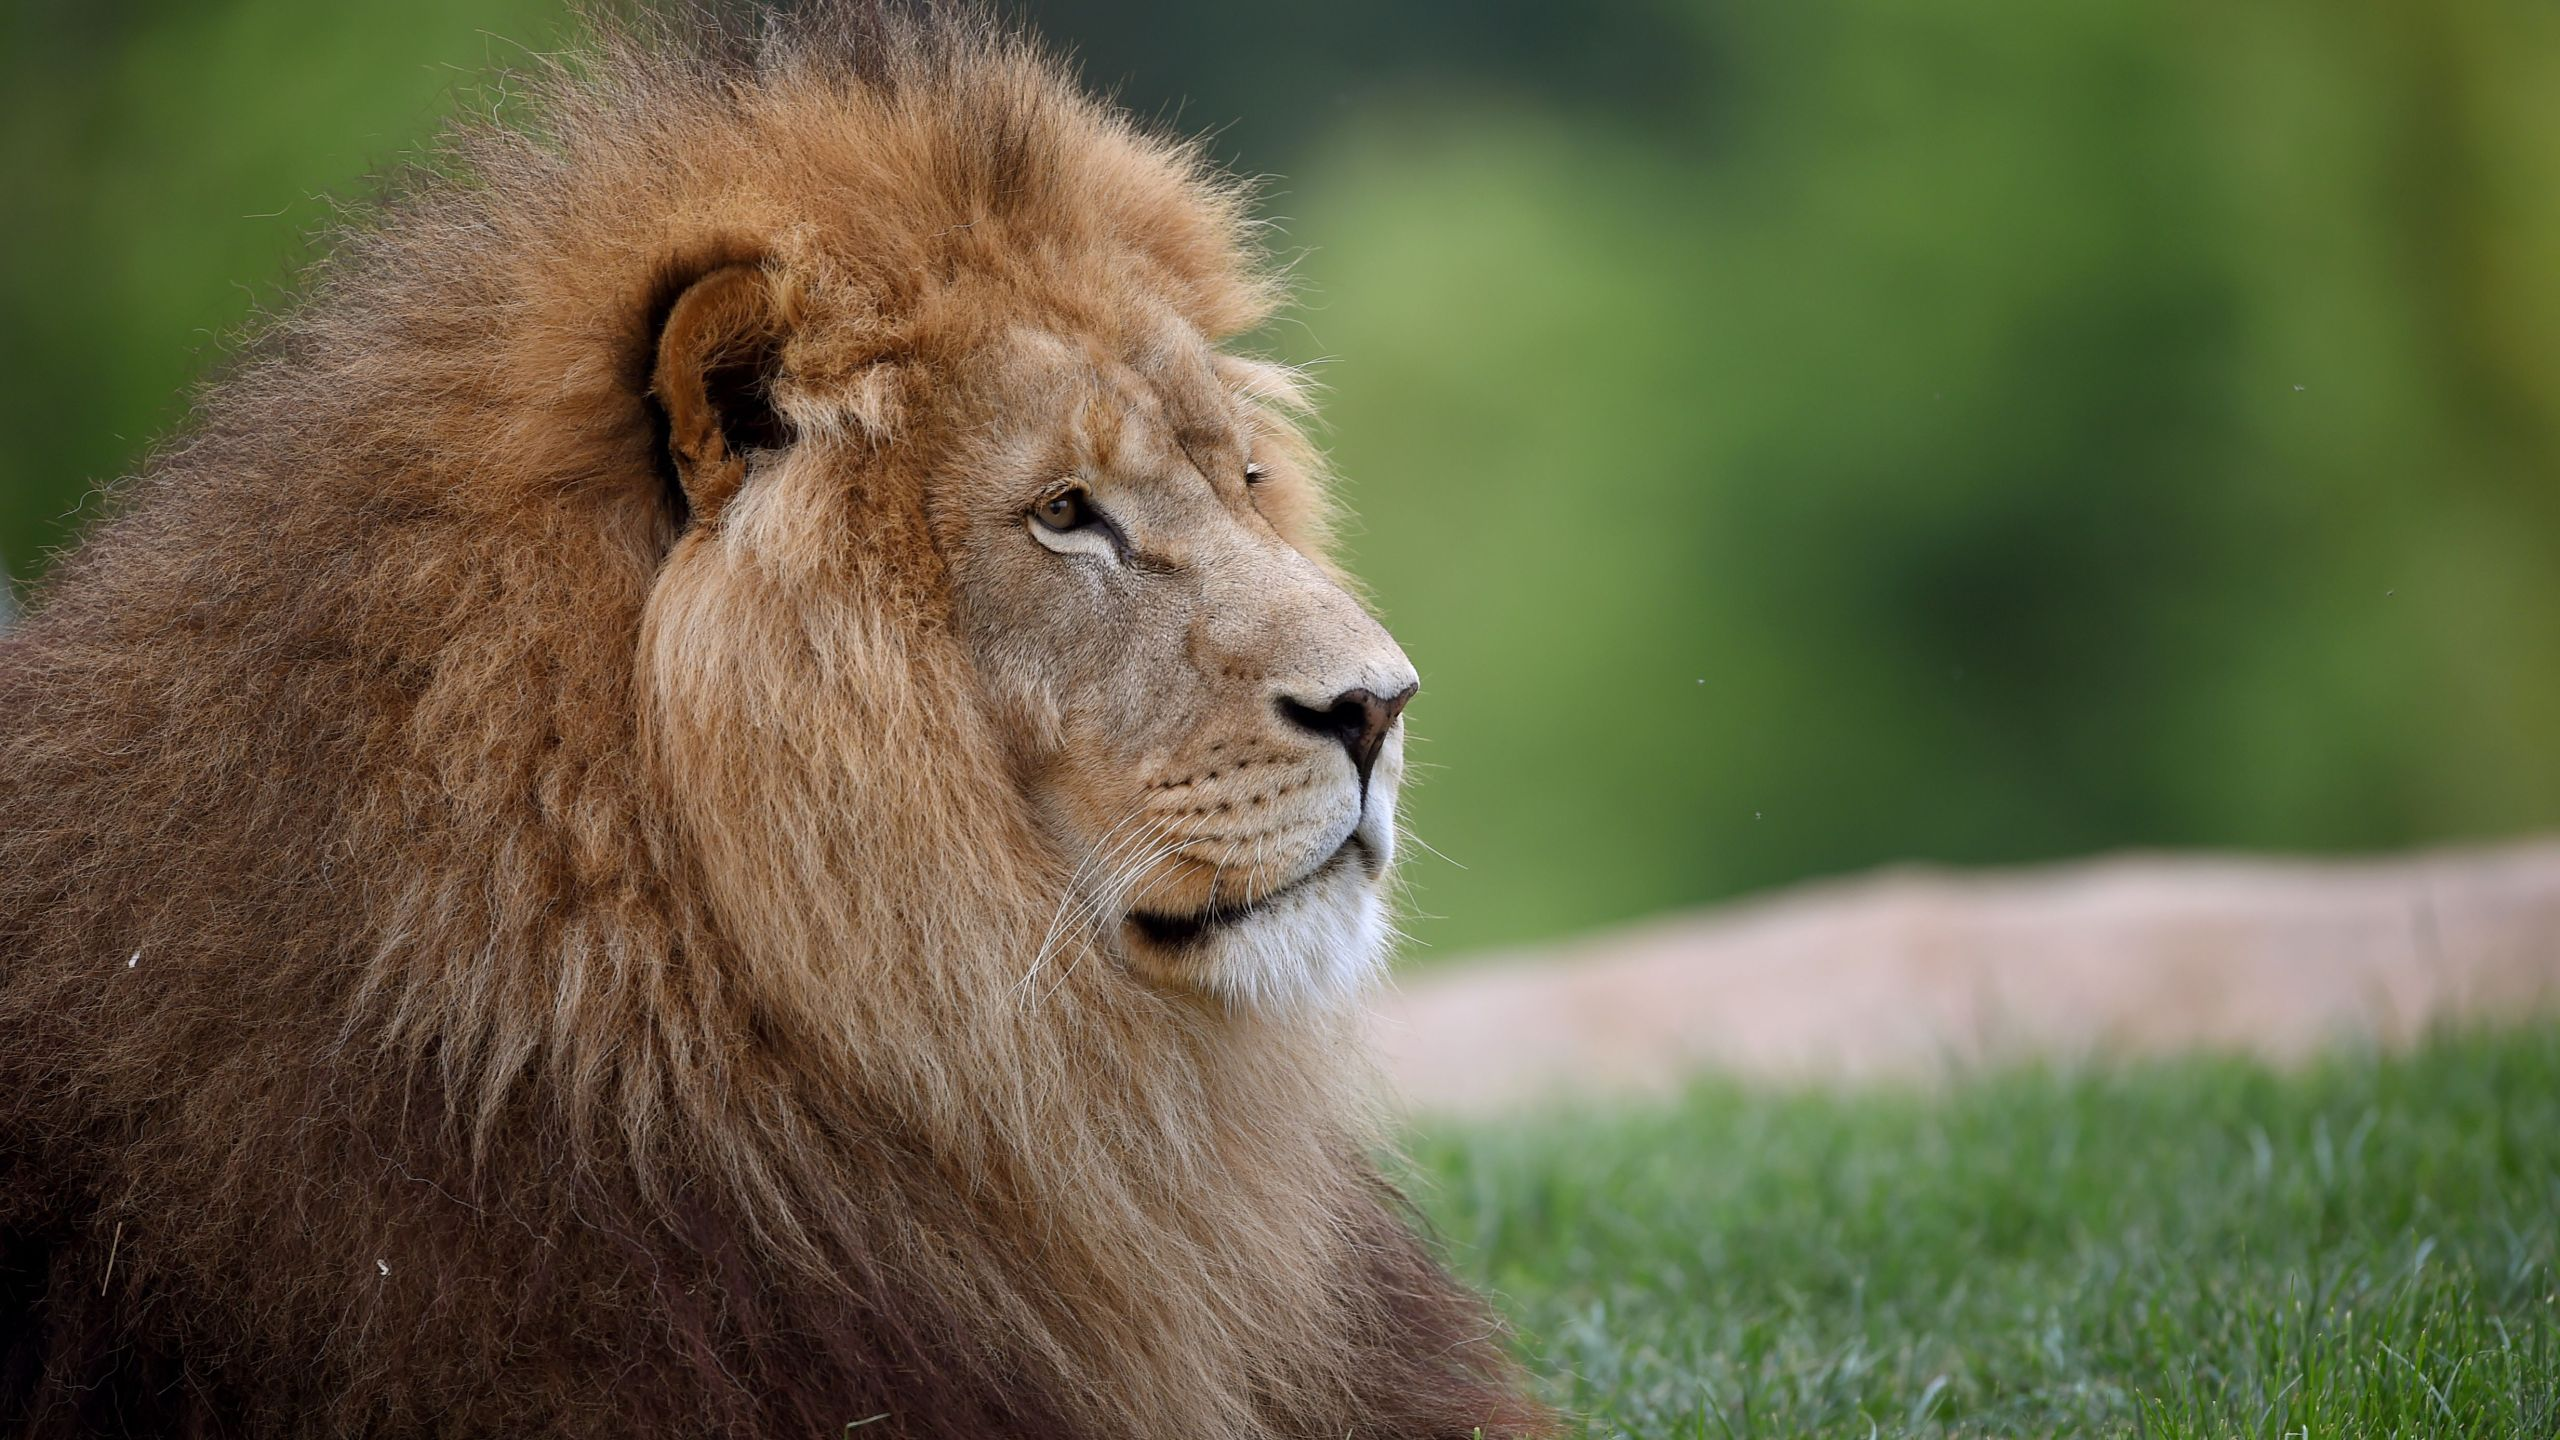 An African lion is seen in a file photo. (GUILLAUME SOUVANT/AFP via Getty Images)